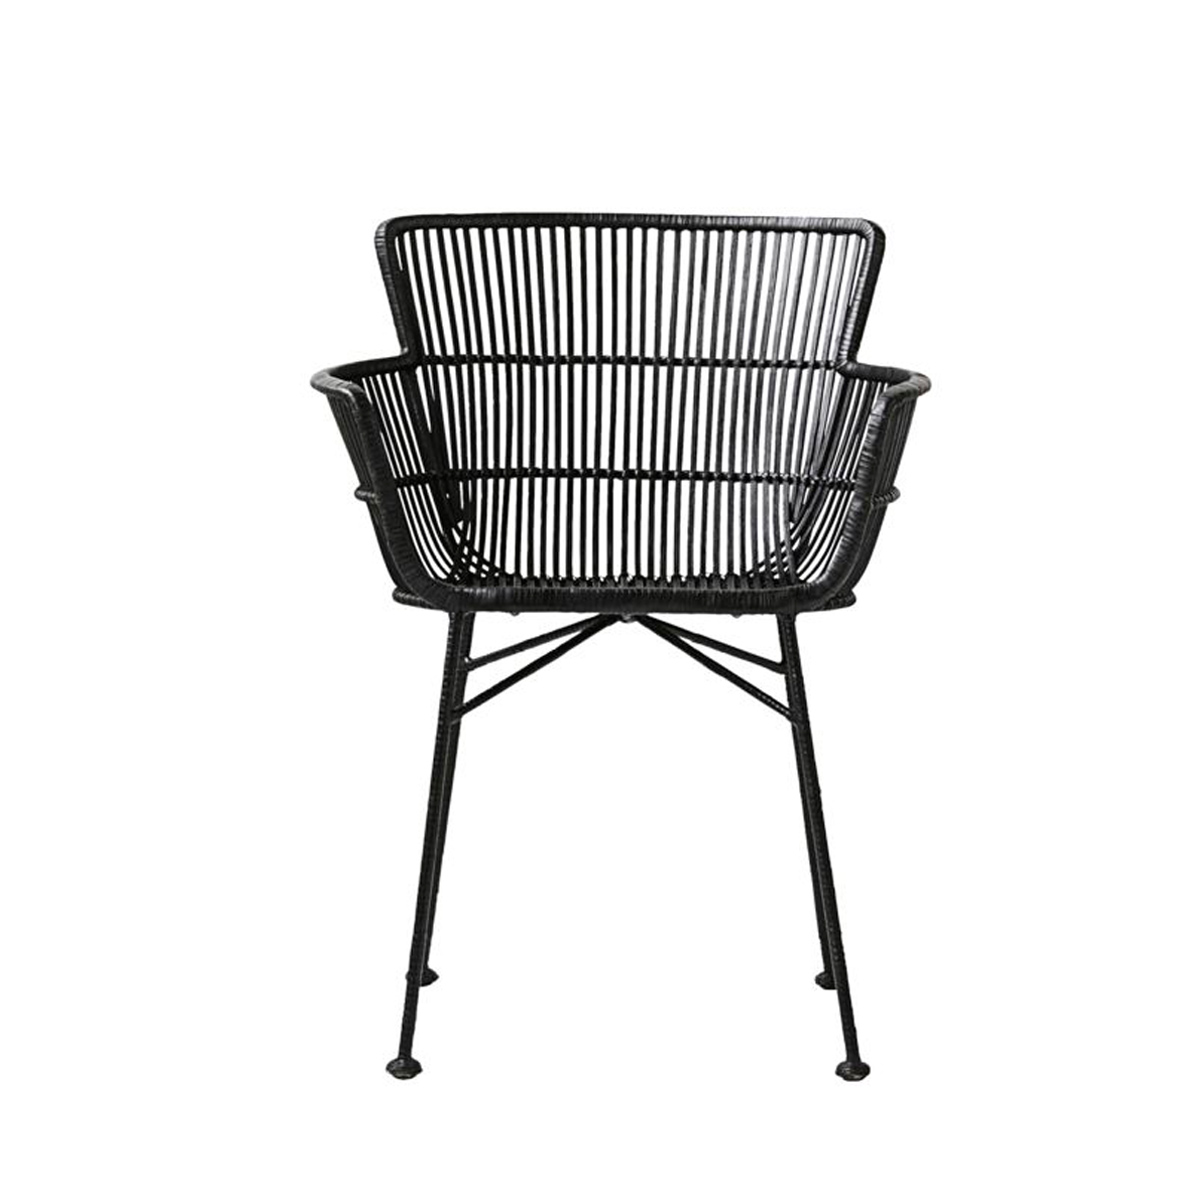 BLACK-RATTAN-DINING-CAHIR-HOUSE-DOCTOR